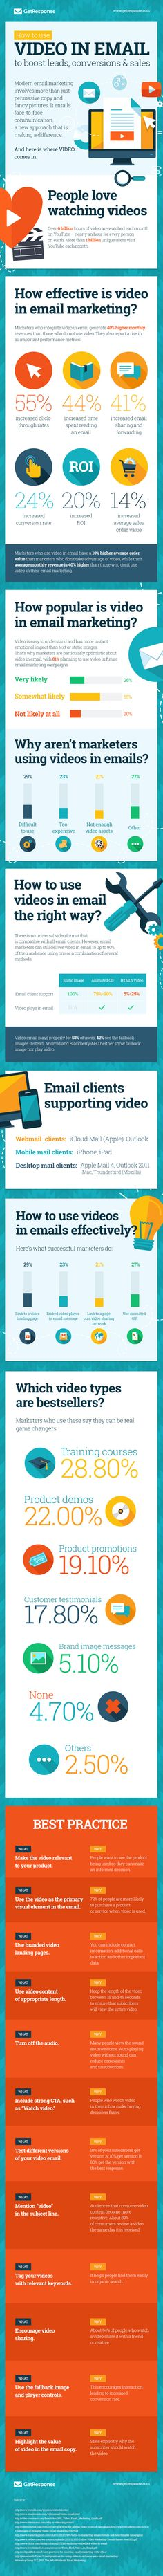 How to use video in email #emailmarketing #infographic